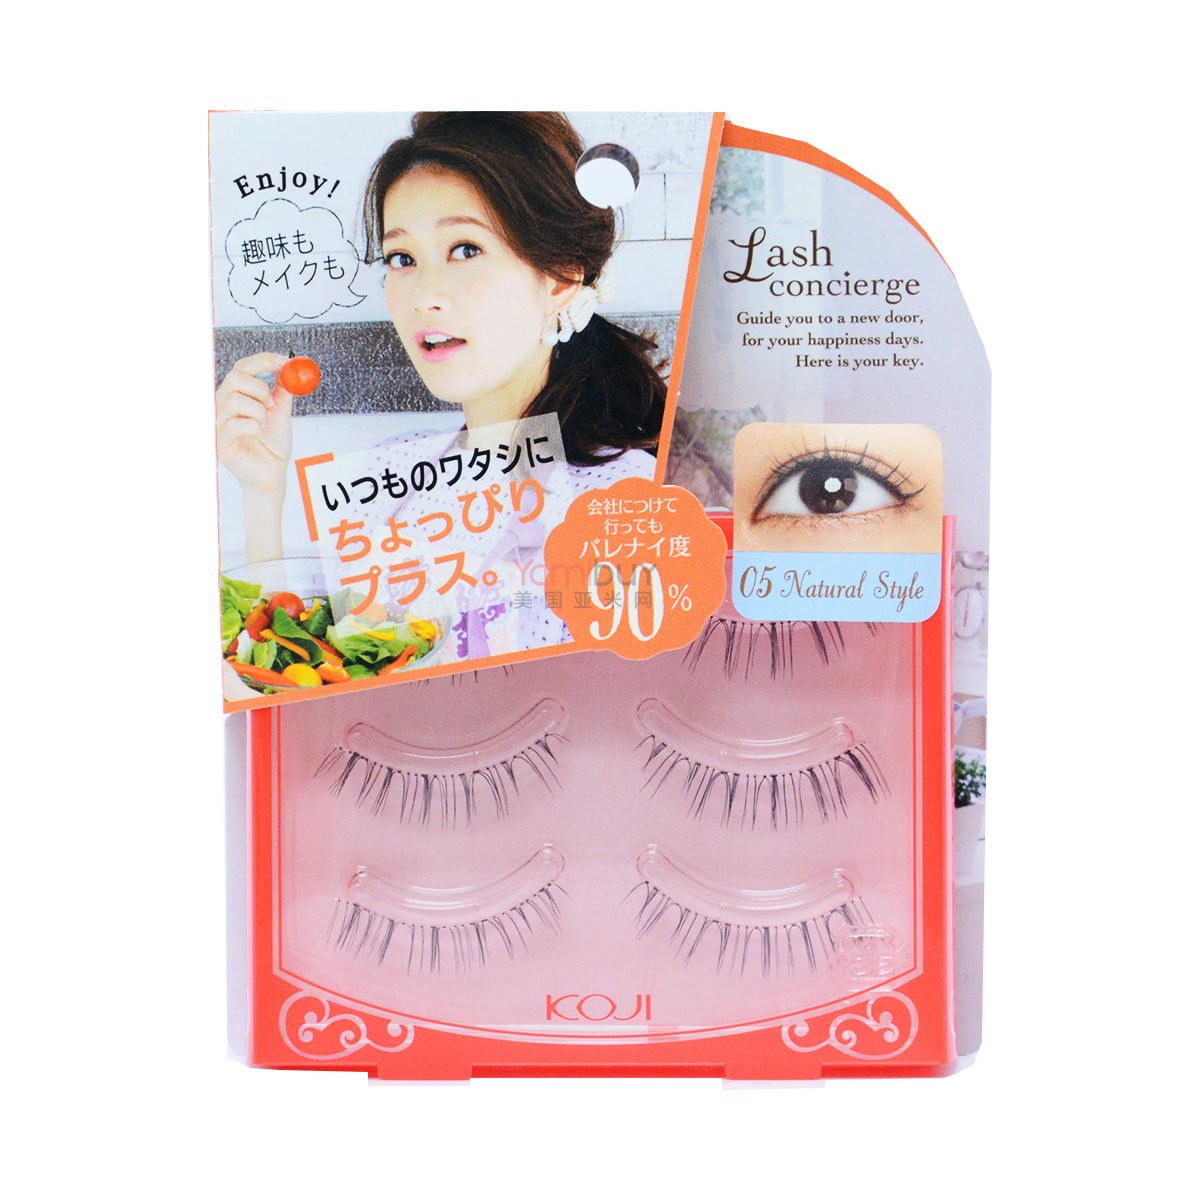 KOJI LASH CONCIERGE False Eyelashes 05 Natural Style 3pairs